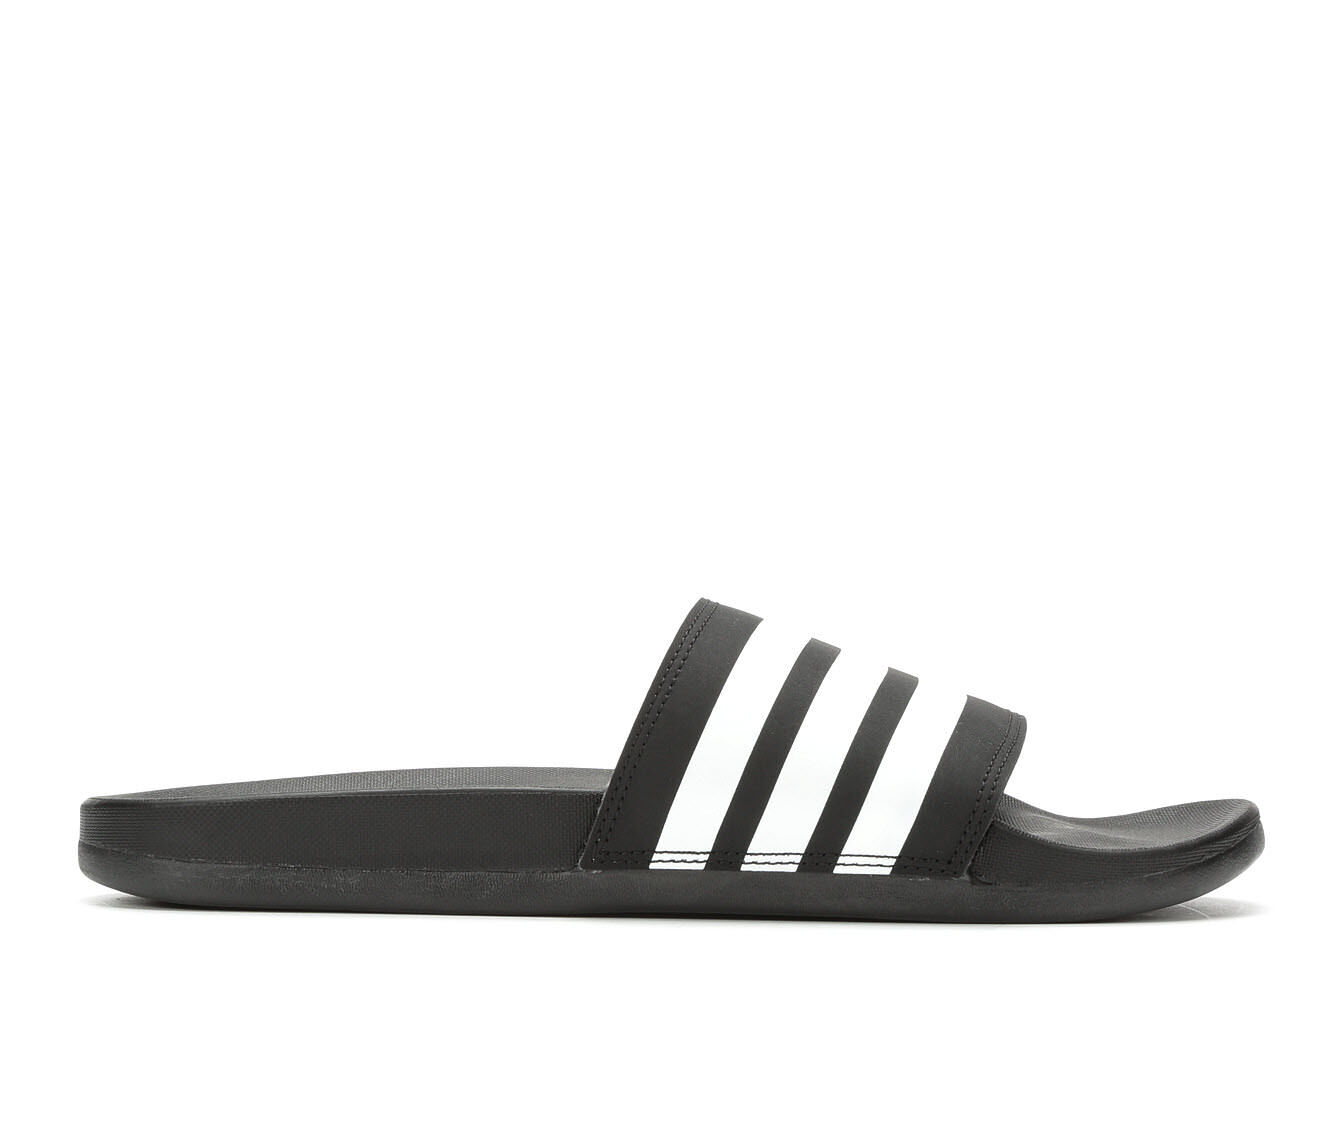 Men's Adidas Adilette Cloudfoam Plus Sport Slides Black/White